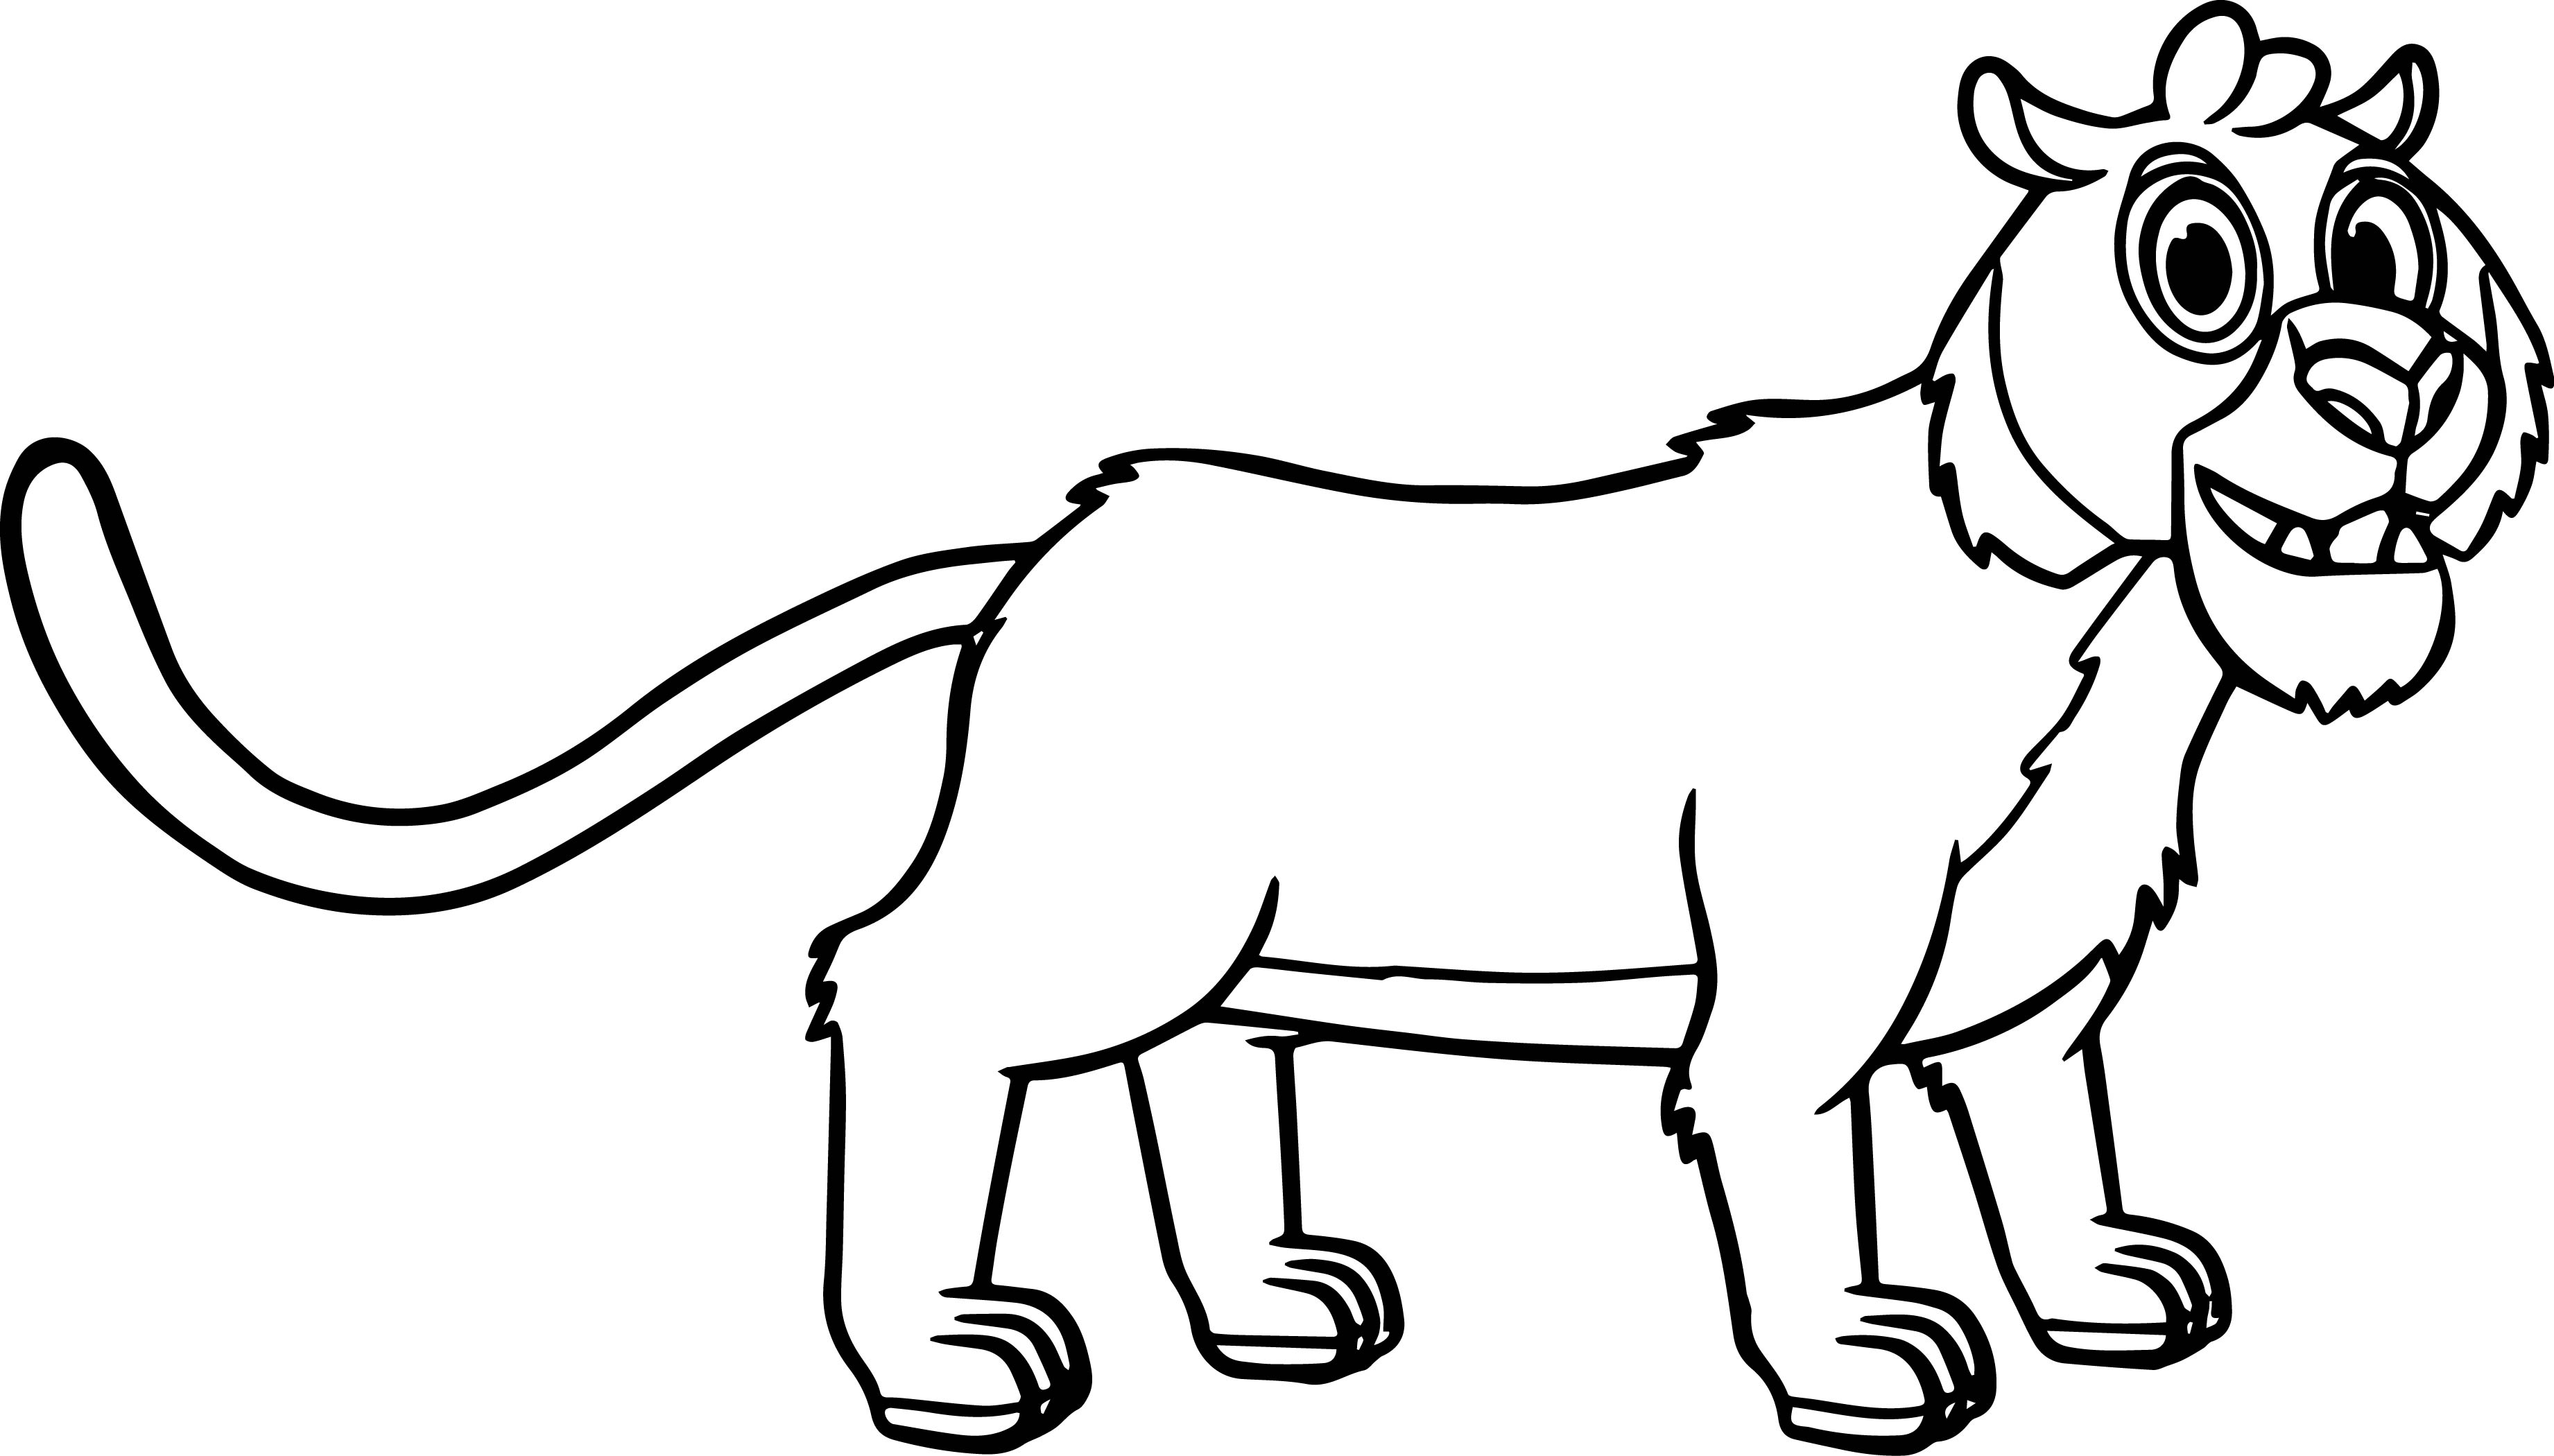 3683x2100 Morphle Cartoon My Cute Pet Tiger Coloring Page Wecoloringpage